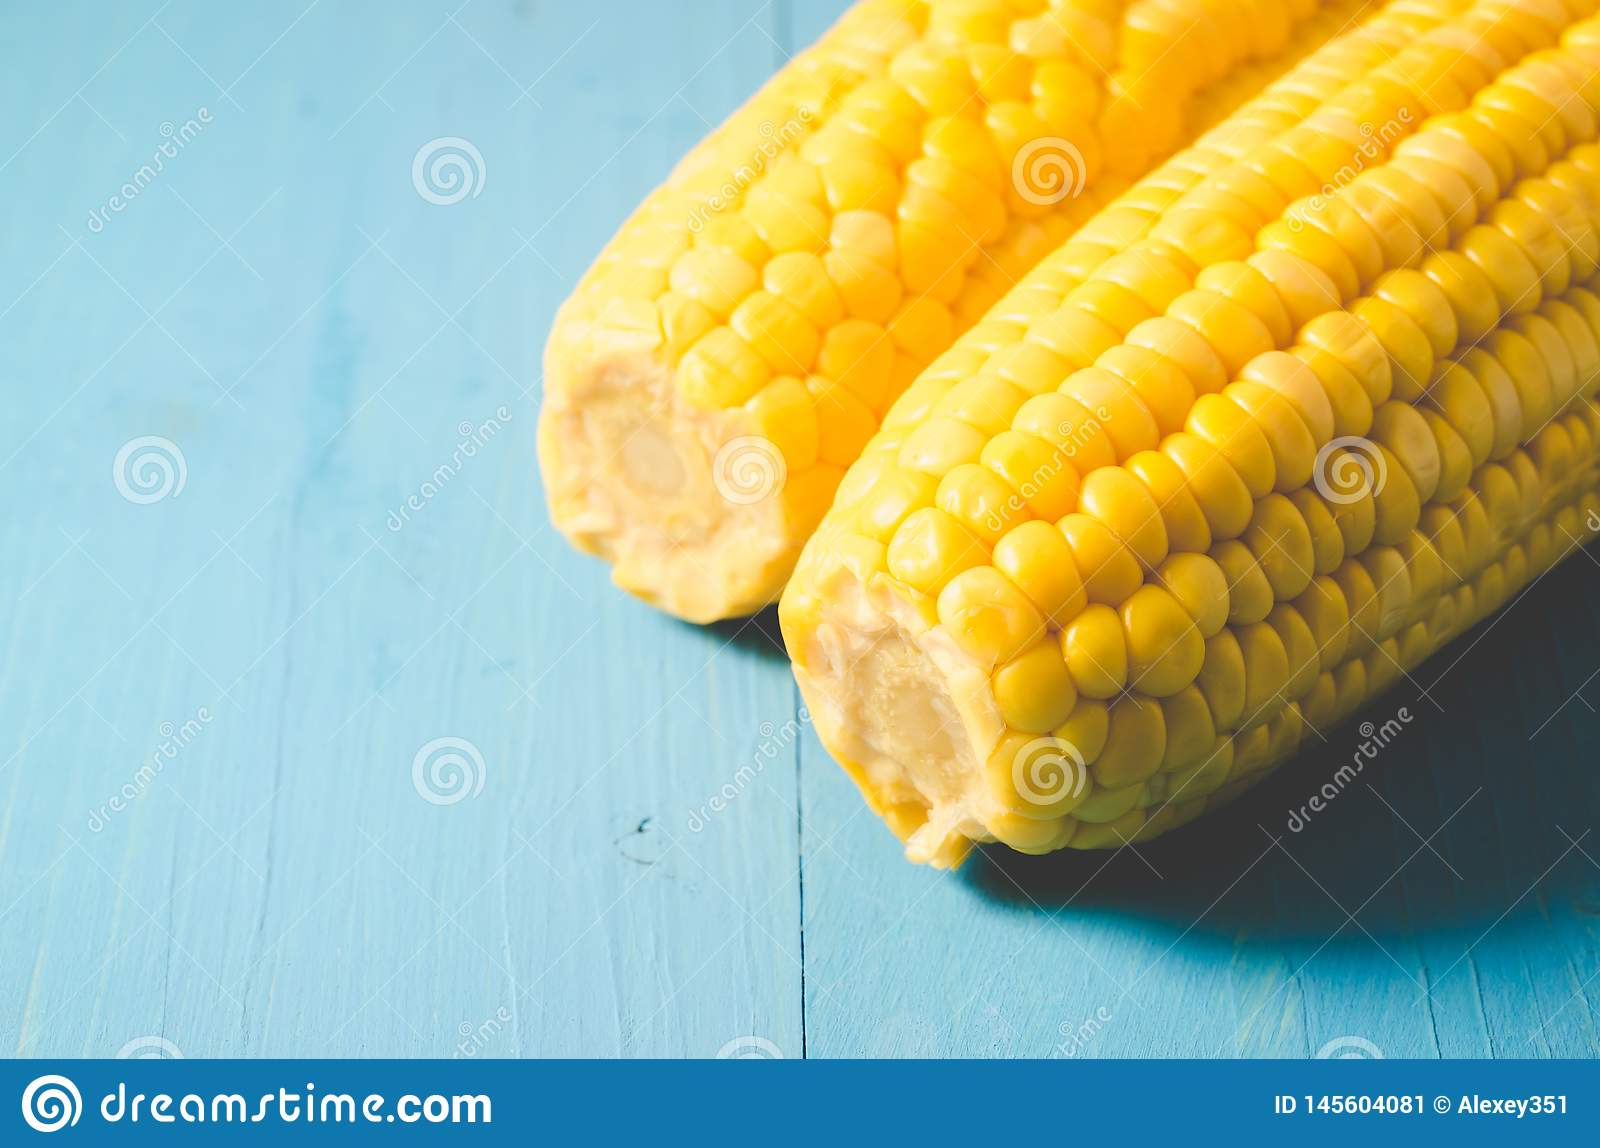 Two ears of boiled appetizing corn on a blue background/two ears of boiled appetizing corn on a blue background. Healthy food.